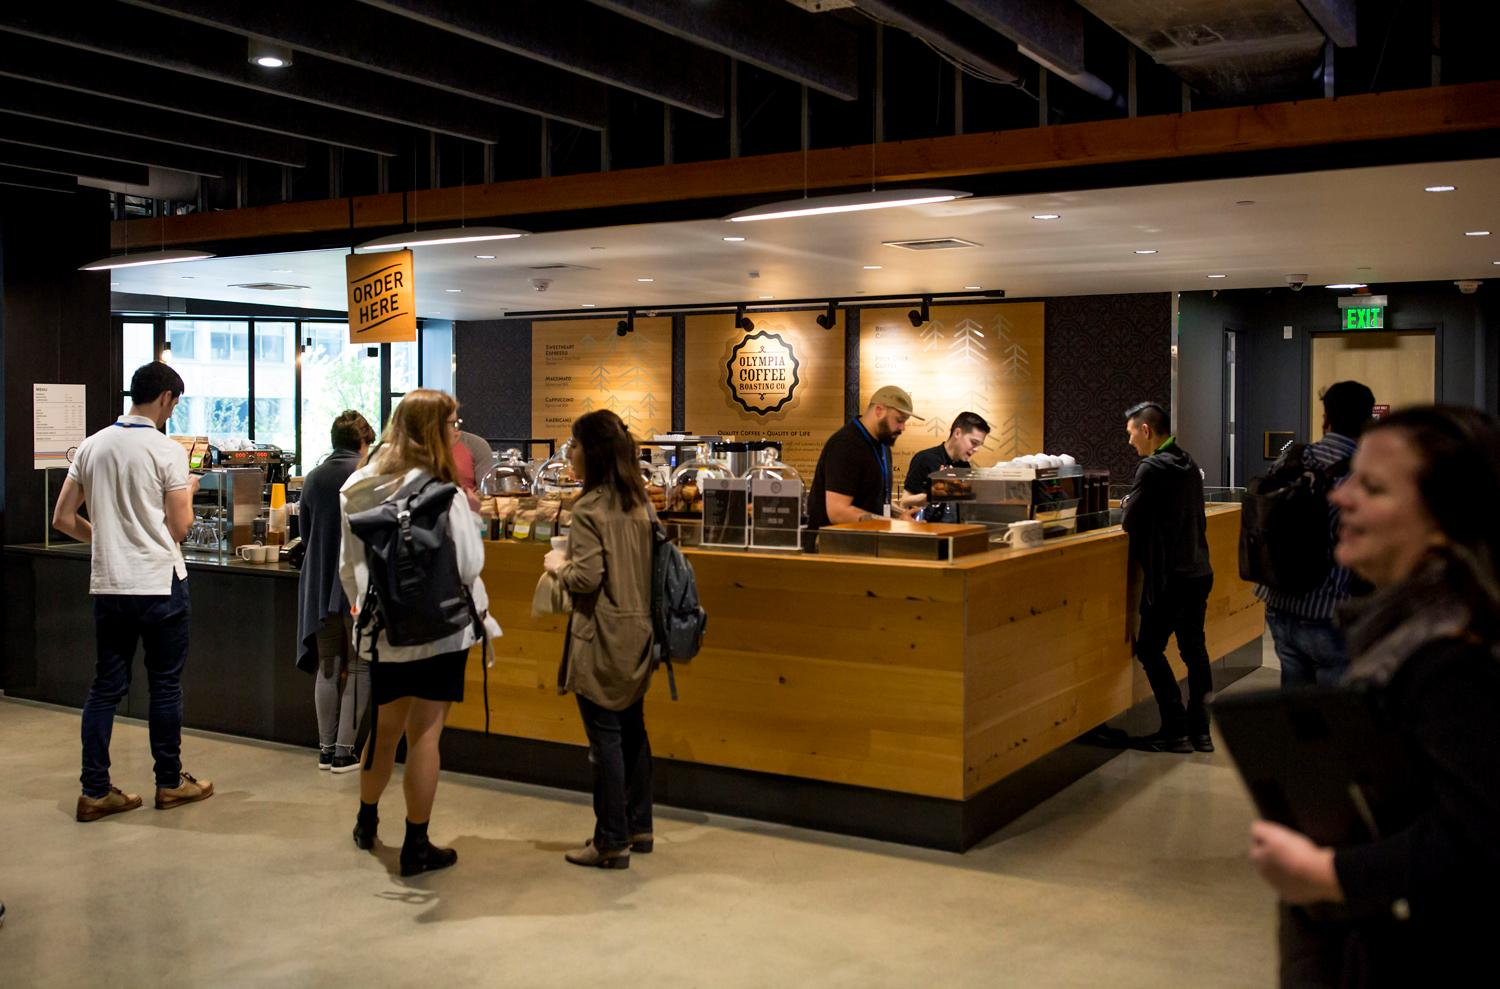 <p>#4. Olympia Coffee Roasting Co. / Doppler Buildnig: In 2011, Olympia Coffee was awarded 2nd, 3rd, 4th and 5th Place in the Northwest Brewers Cup. So yeah, they're good.</p><p>Did you know there are 17 total coffee shops on the Amazon campus in South Lake Union? The tech company graciously allowed on us on their usually secretive campus to check out as many as we could get to in a two hour window (spoiler alert - it was 12). So...here they are! You'll have to use your imagination for the final missing five. We were quite please to see that all the coffee shops are local coffee roasters. (Image: Sy Bean / Seattle Refined)</p>